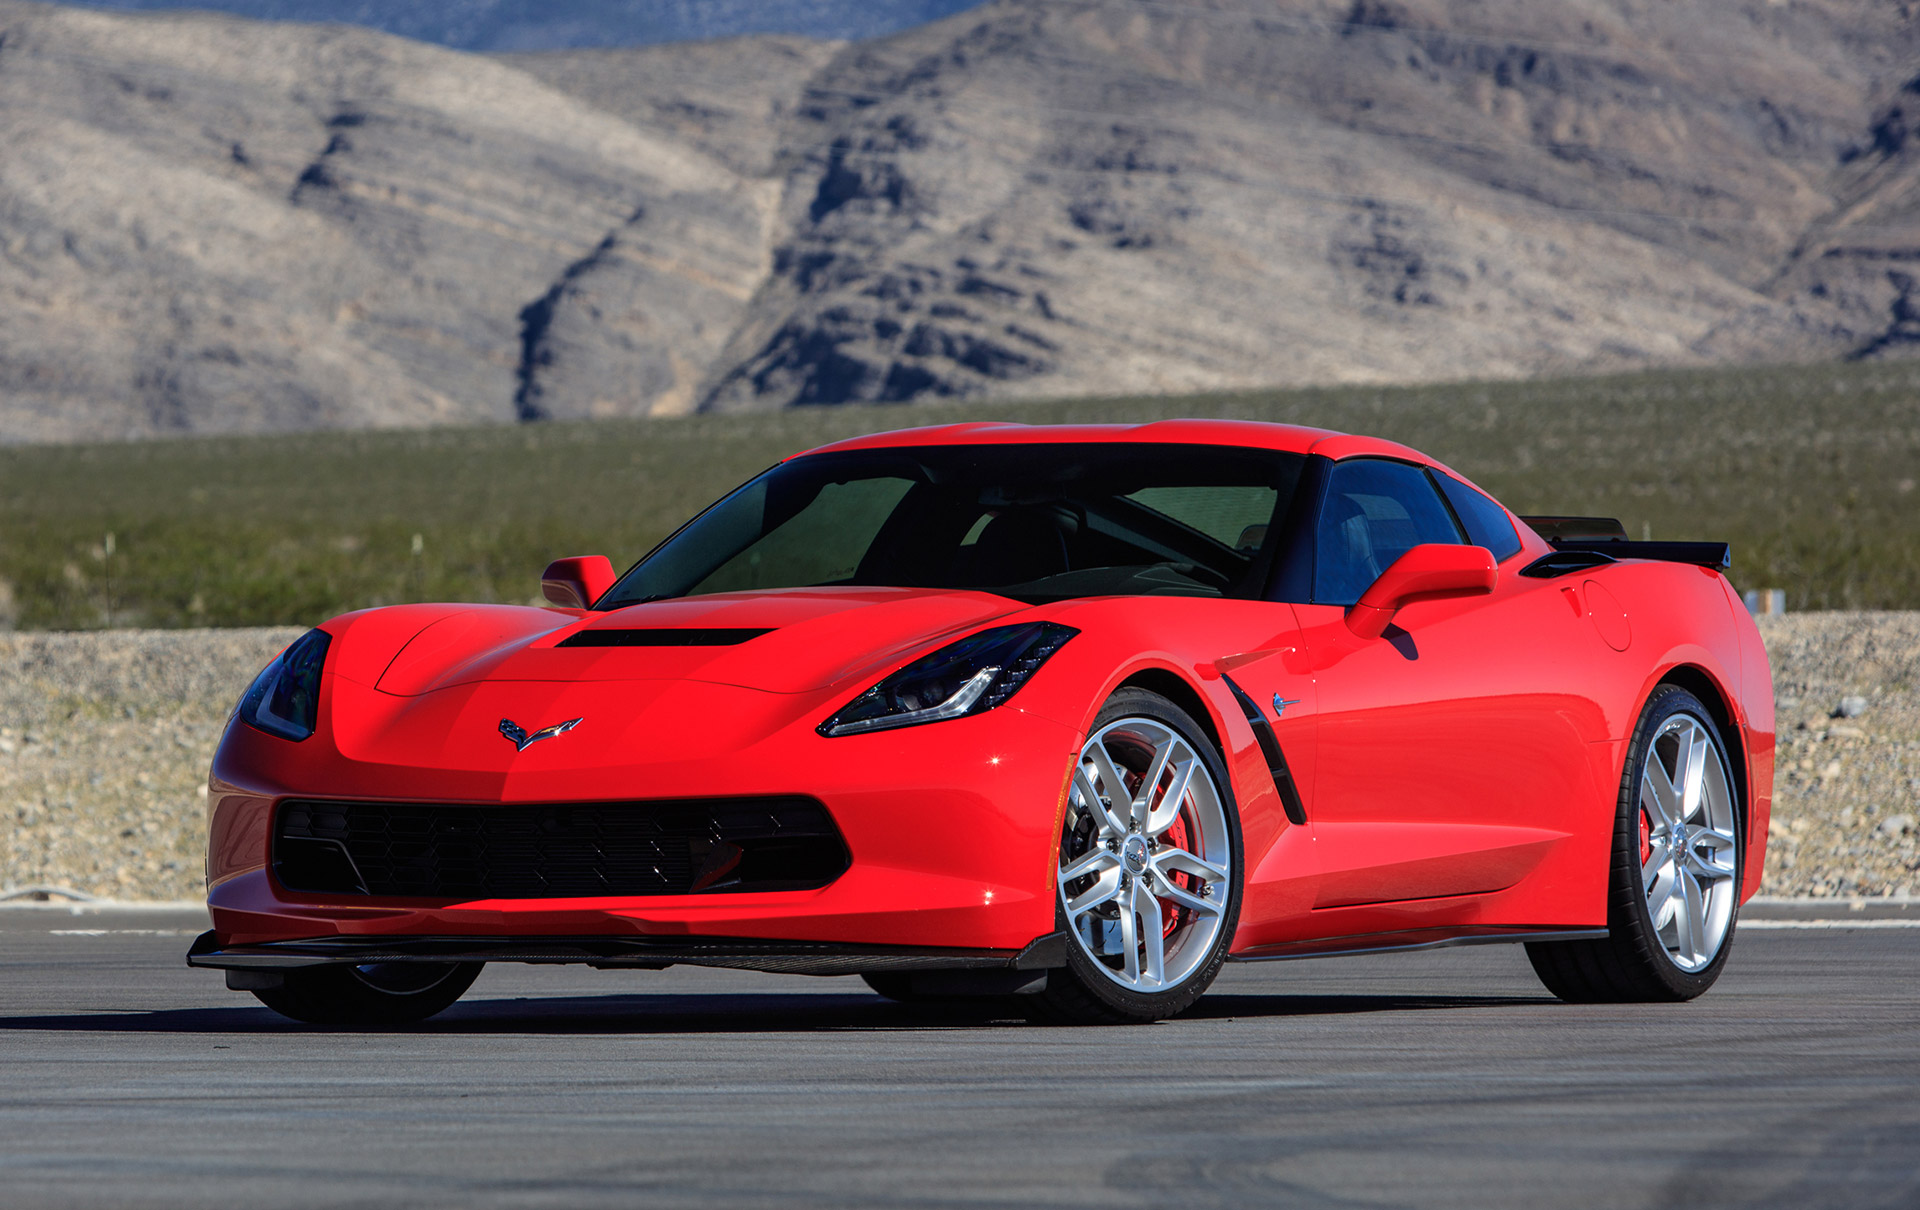 2016 Chevrolet Corvette Chevy Gas Mileage The Car